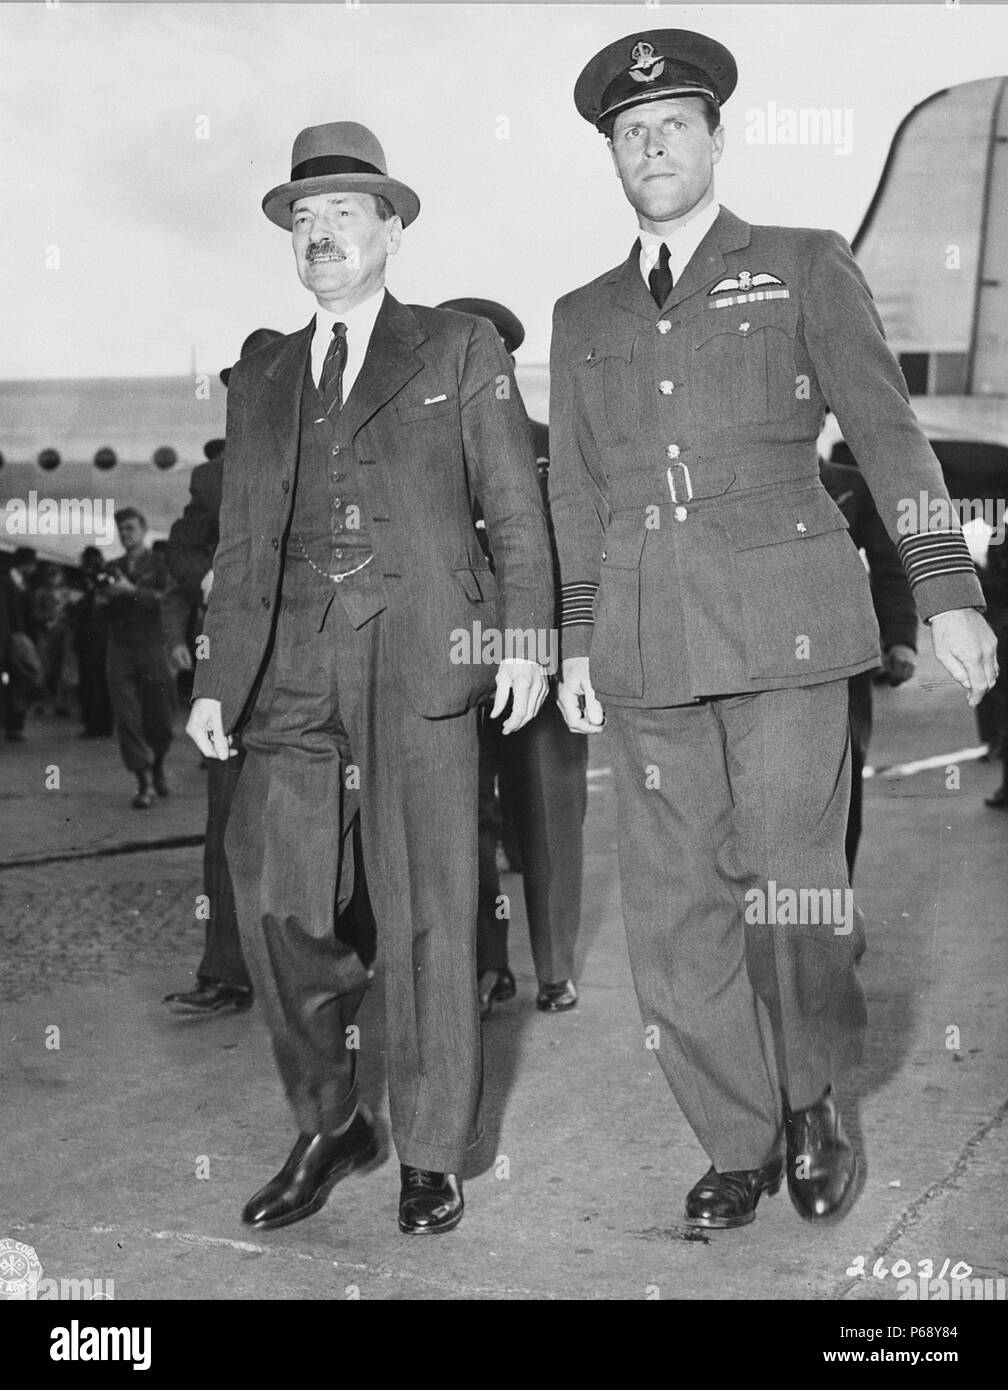 Photograph of Clement Attlee (1883-1967), arriving at Berlin-Gatow airfield, Berlin. Arriving for the Potsdam Conference after World War Two. Dated 1945 - Stock Image